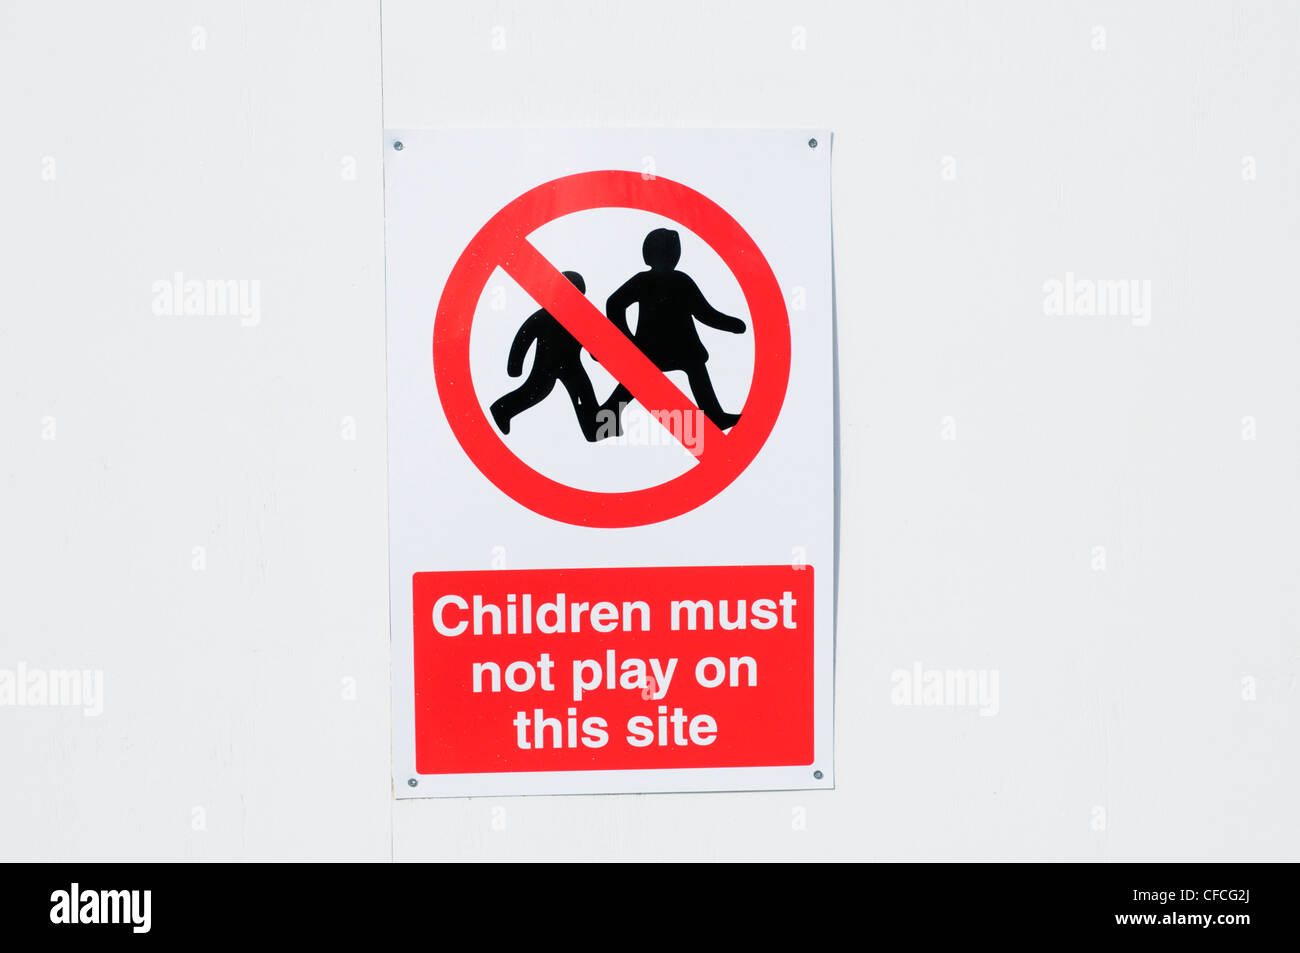 Children Must Not Play On This Site warning sign, Cambridge, England, UK - Stock Image